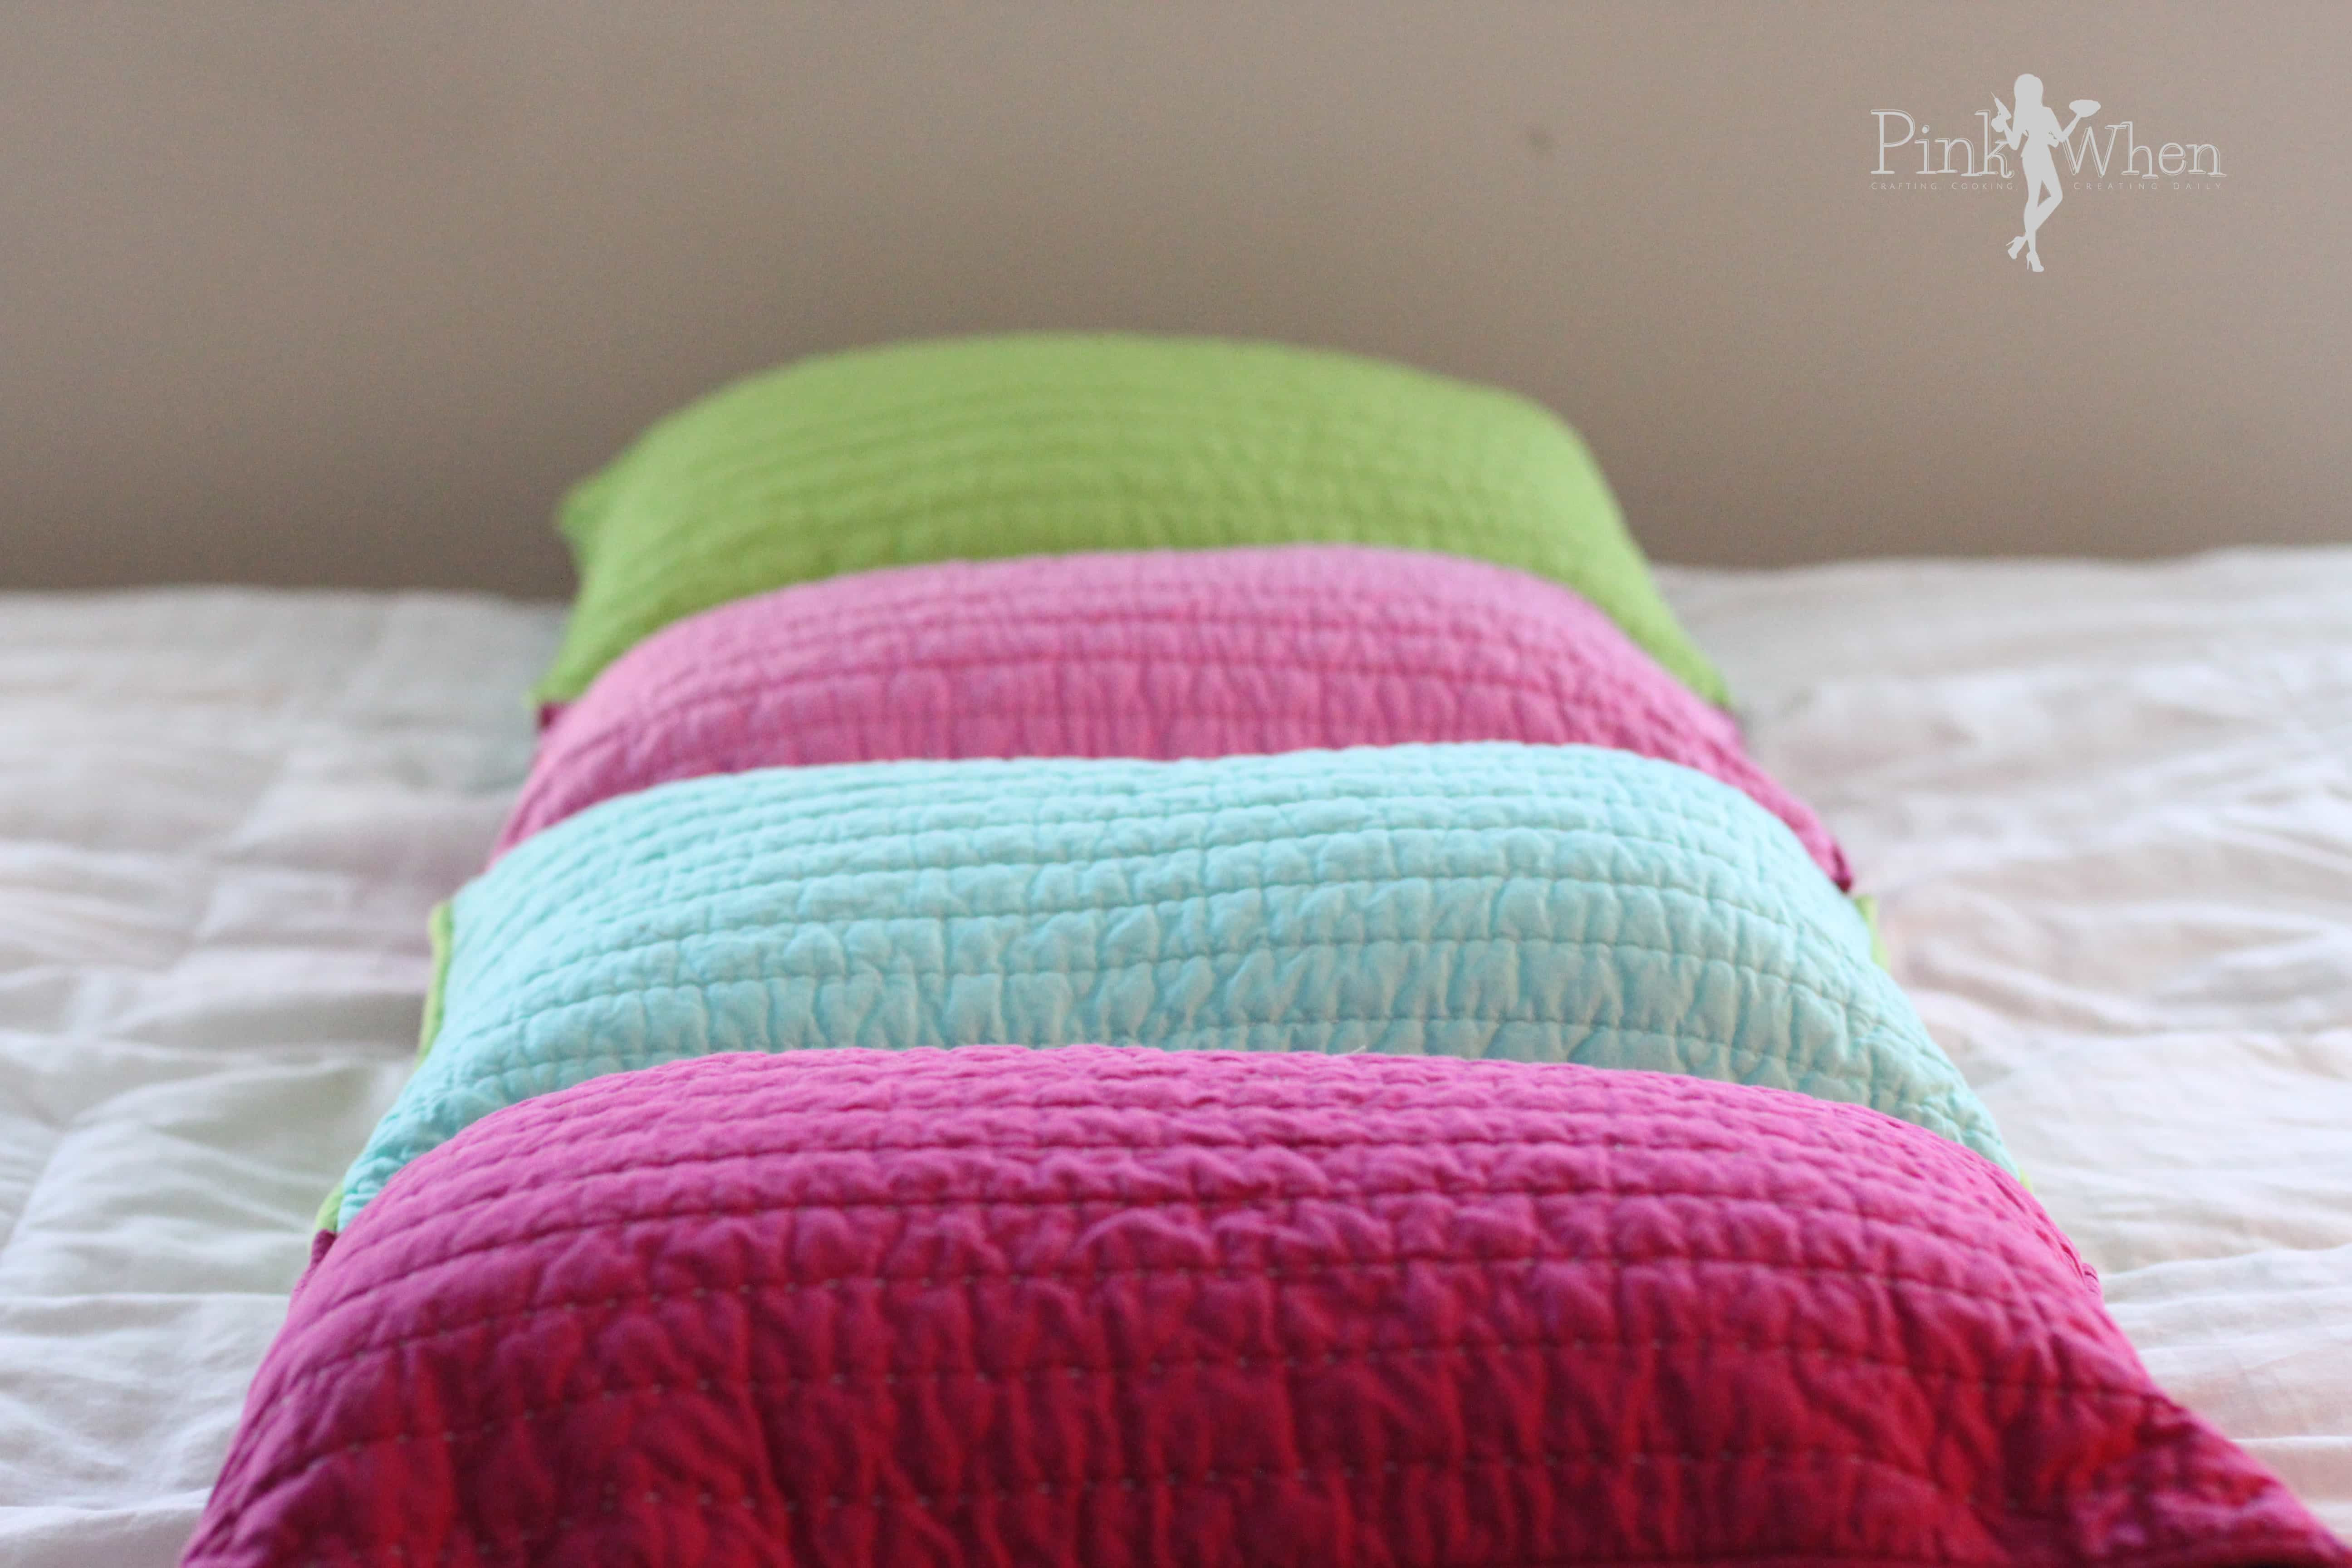 Best ideas about Pillow Bed DIY . Save or Pin DIY Pillow Bed Tutorial PinkWhen Now.